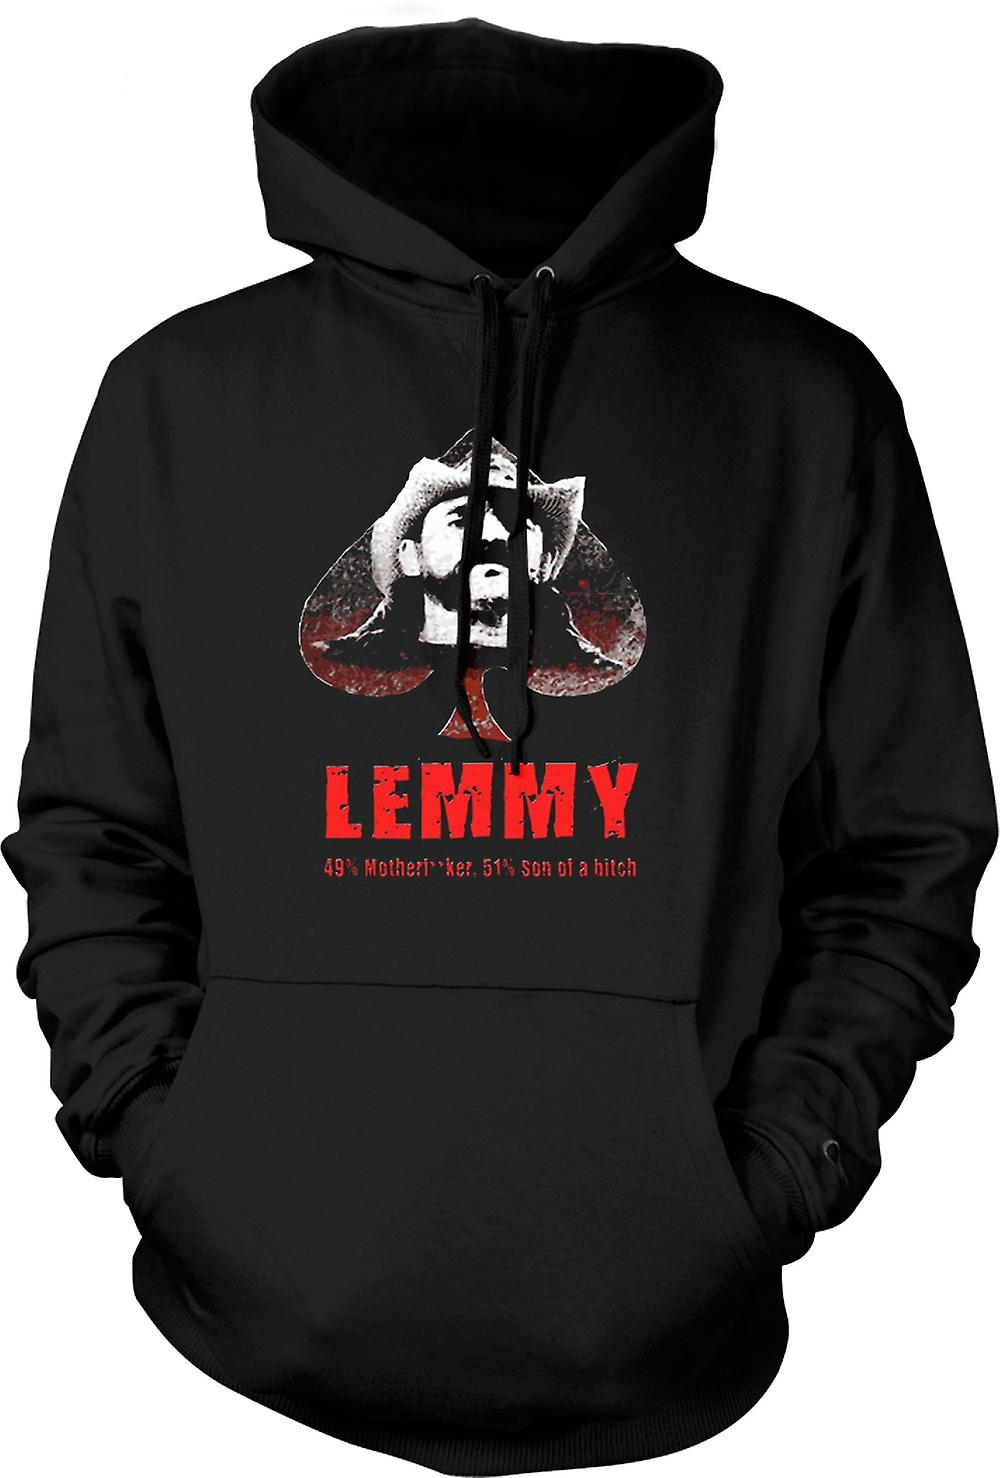 Mens Hoodie - Lemmy - Motorhead - 49% Mother**